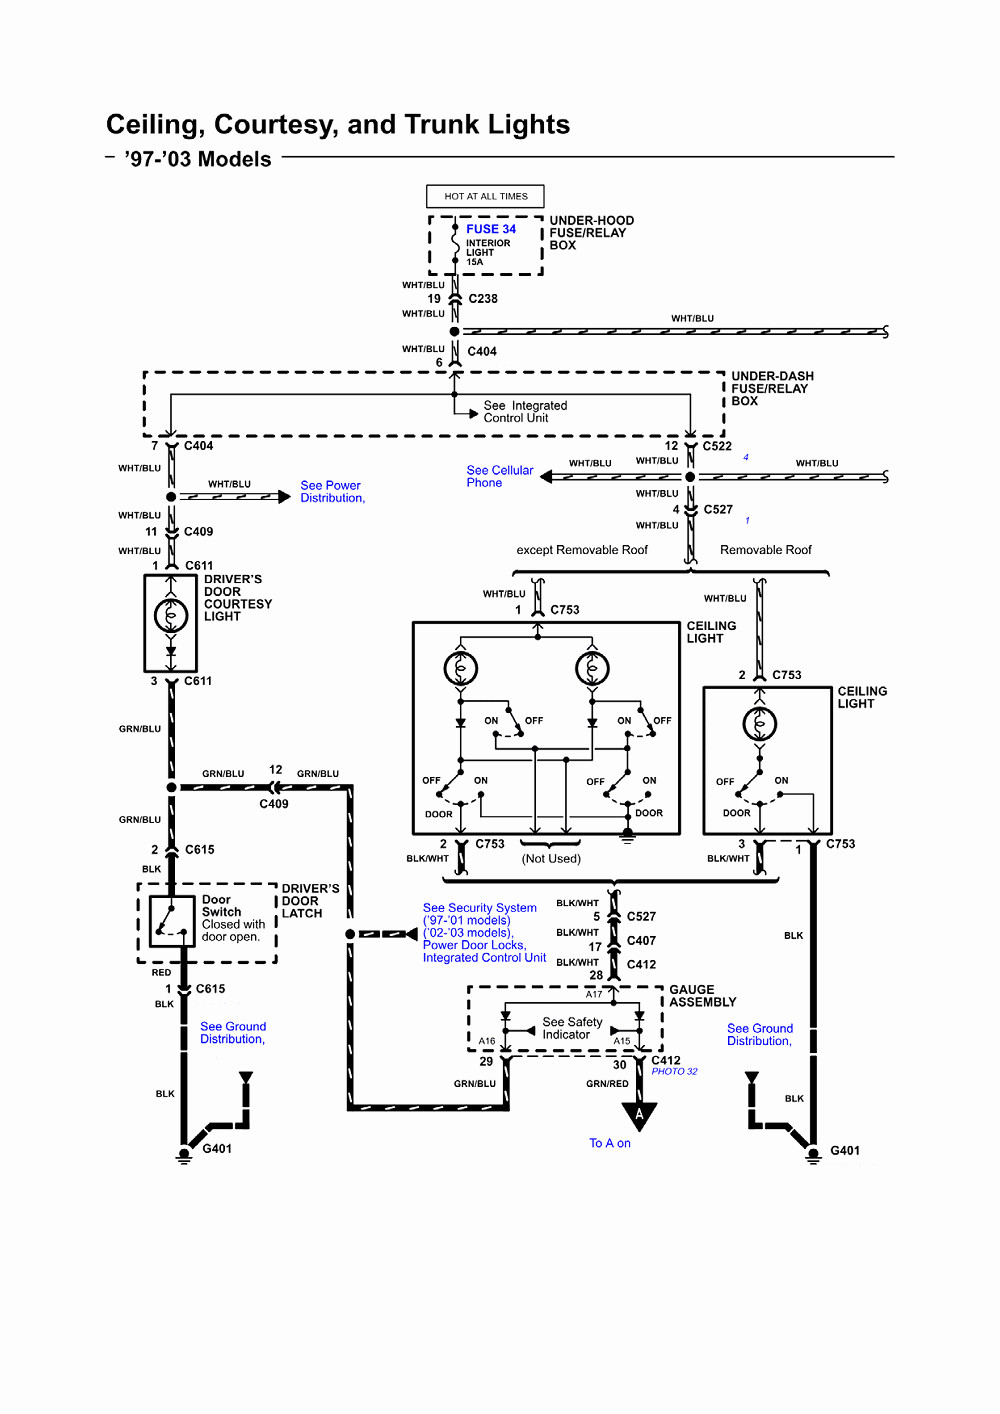 2 Speed Whole House Fan Switch Wiring Diagram from wholefoodsonabudget.com